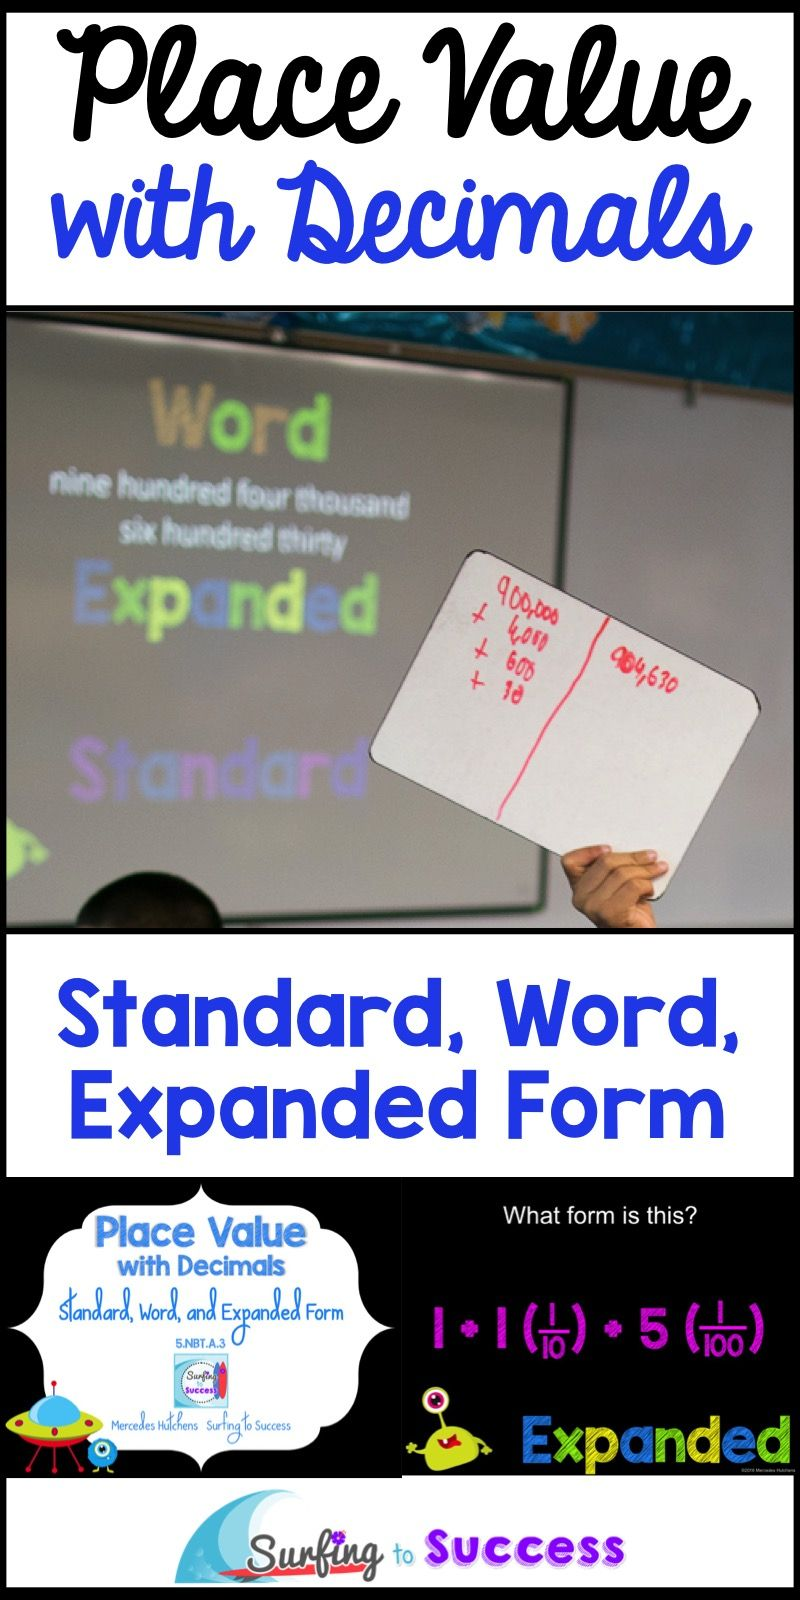 Decimal Place Value Standard Word And Expanded Form Powerpoint